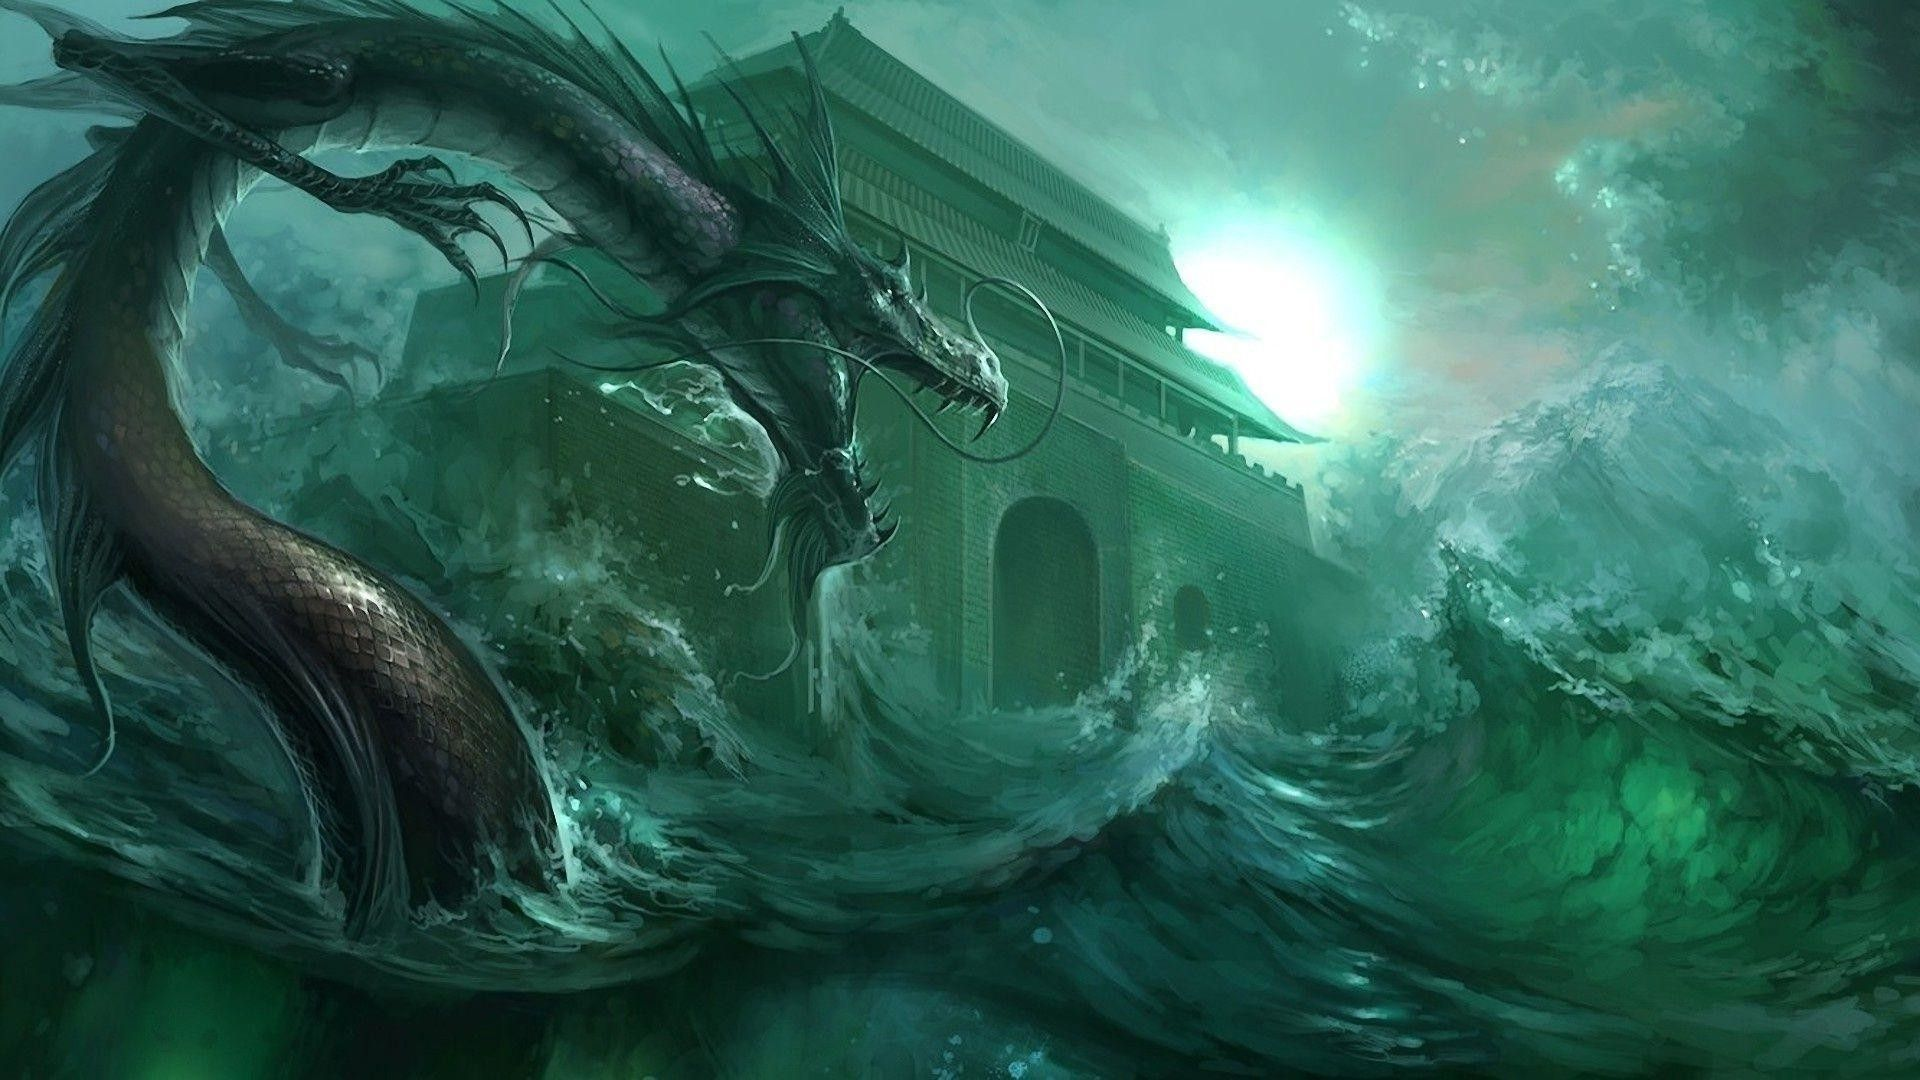 Download Wind Dragon Wallpaper Hd Backgrounds Download